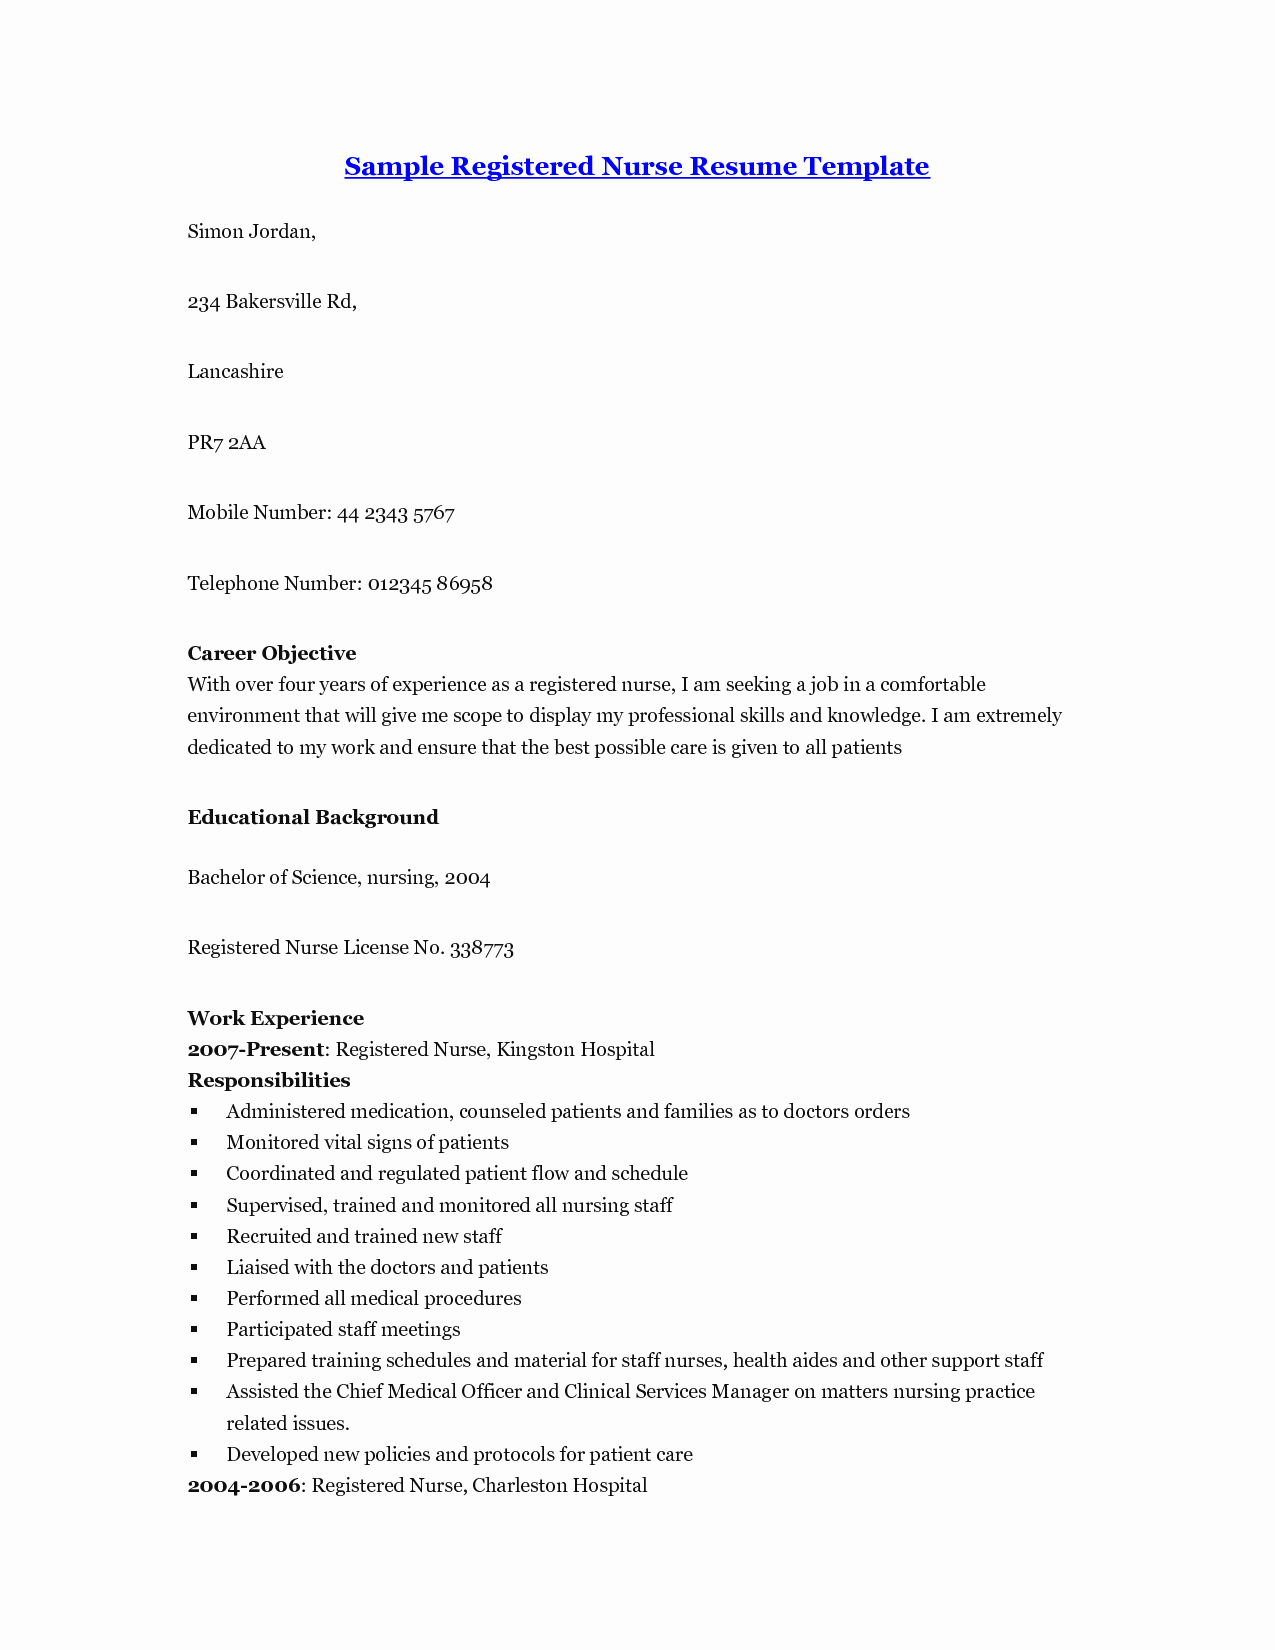 Resume Sample for Nurses without Experience Bongdaao